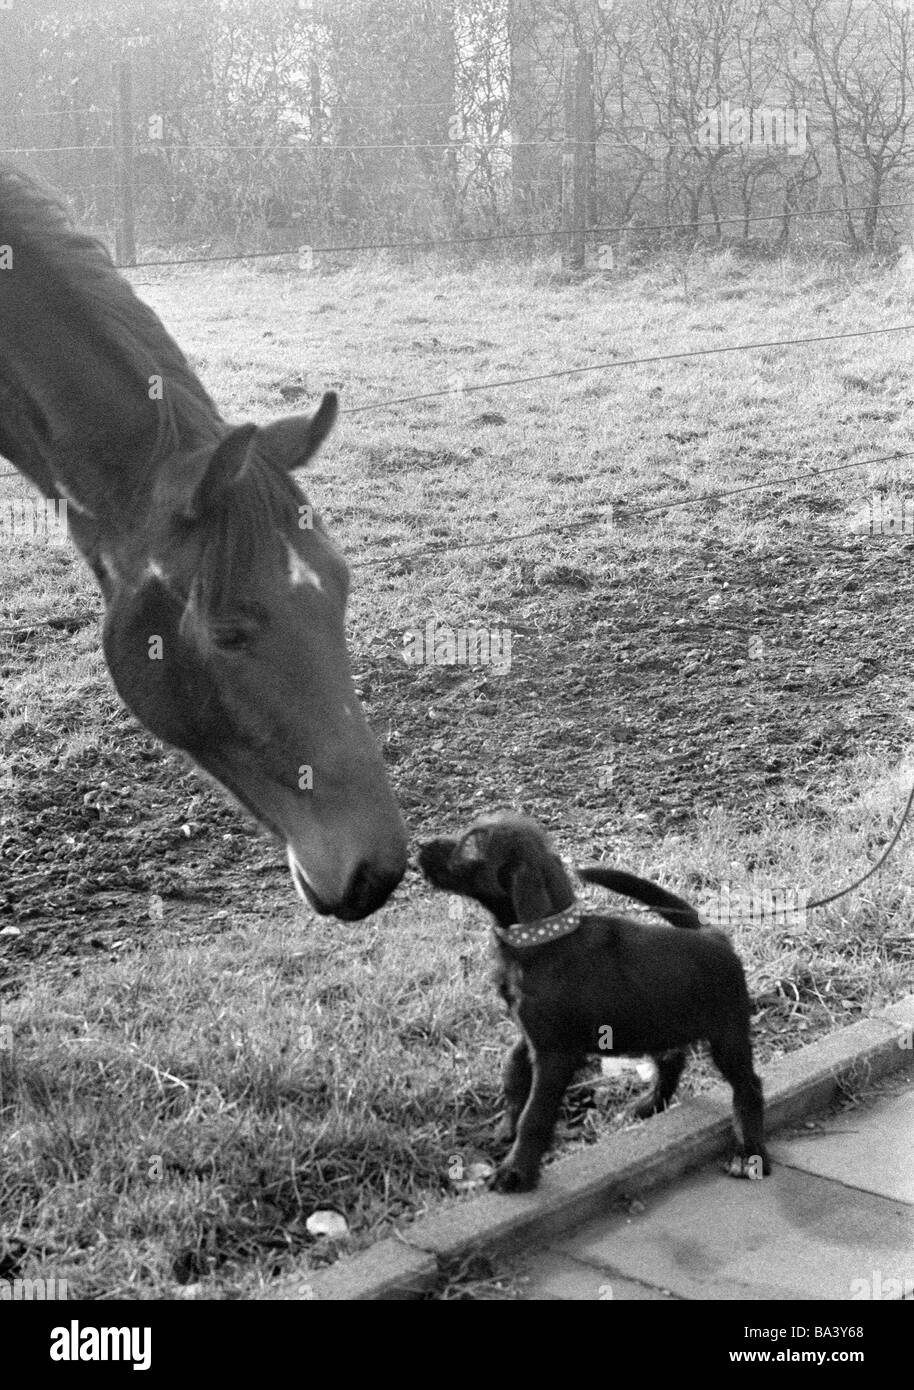 Seventies, black and white photo, humour, animals, horse and leashed dog view each other through a pasture fence - Stock Image